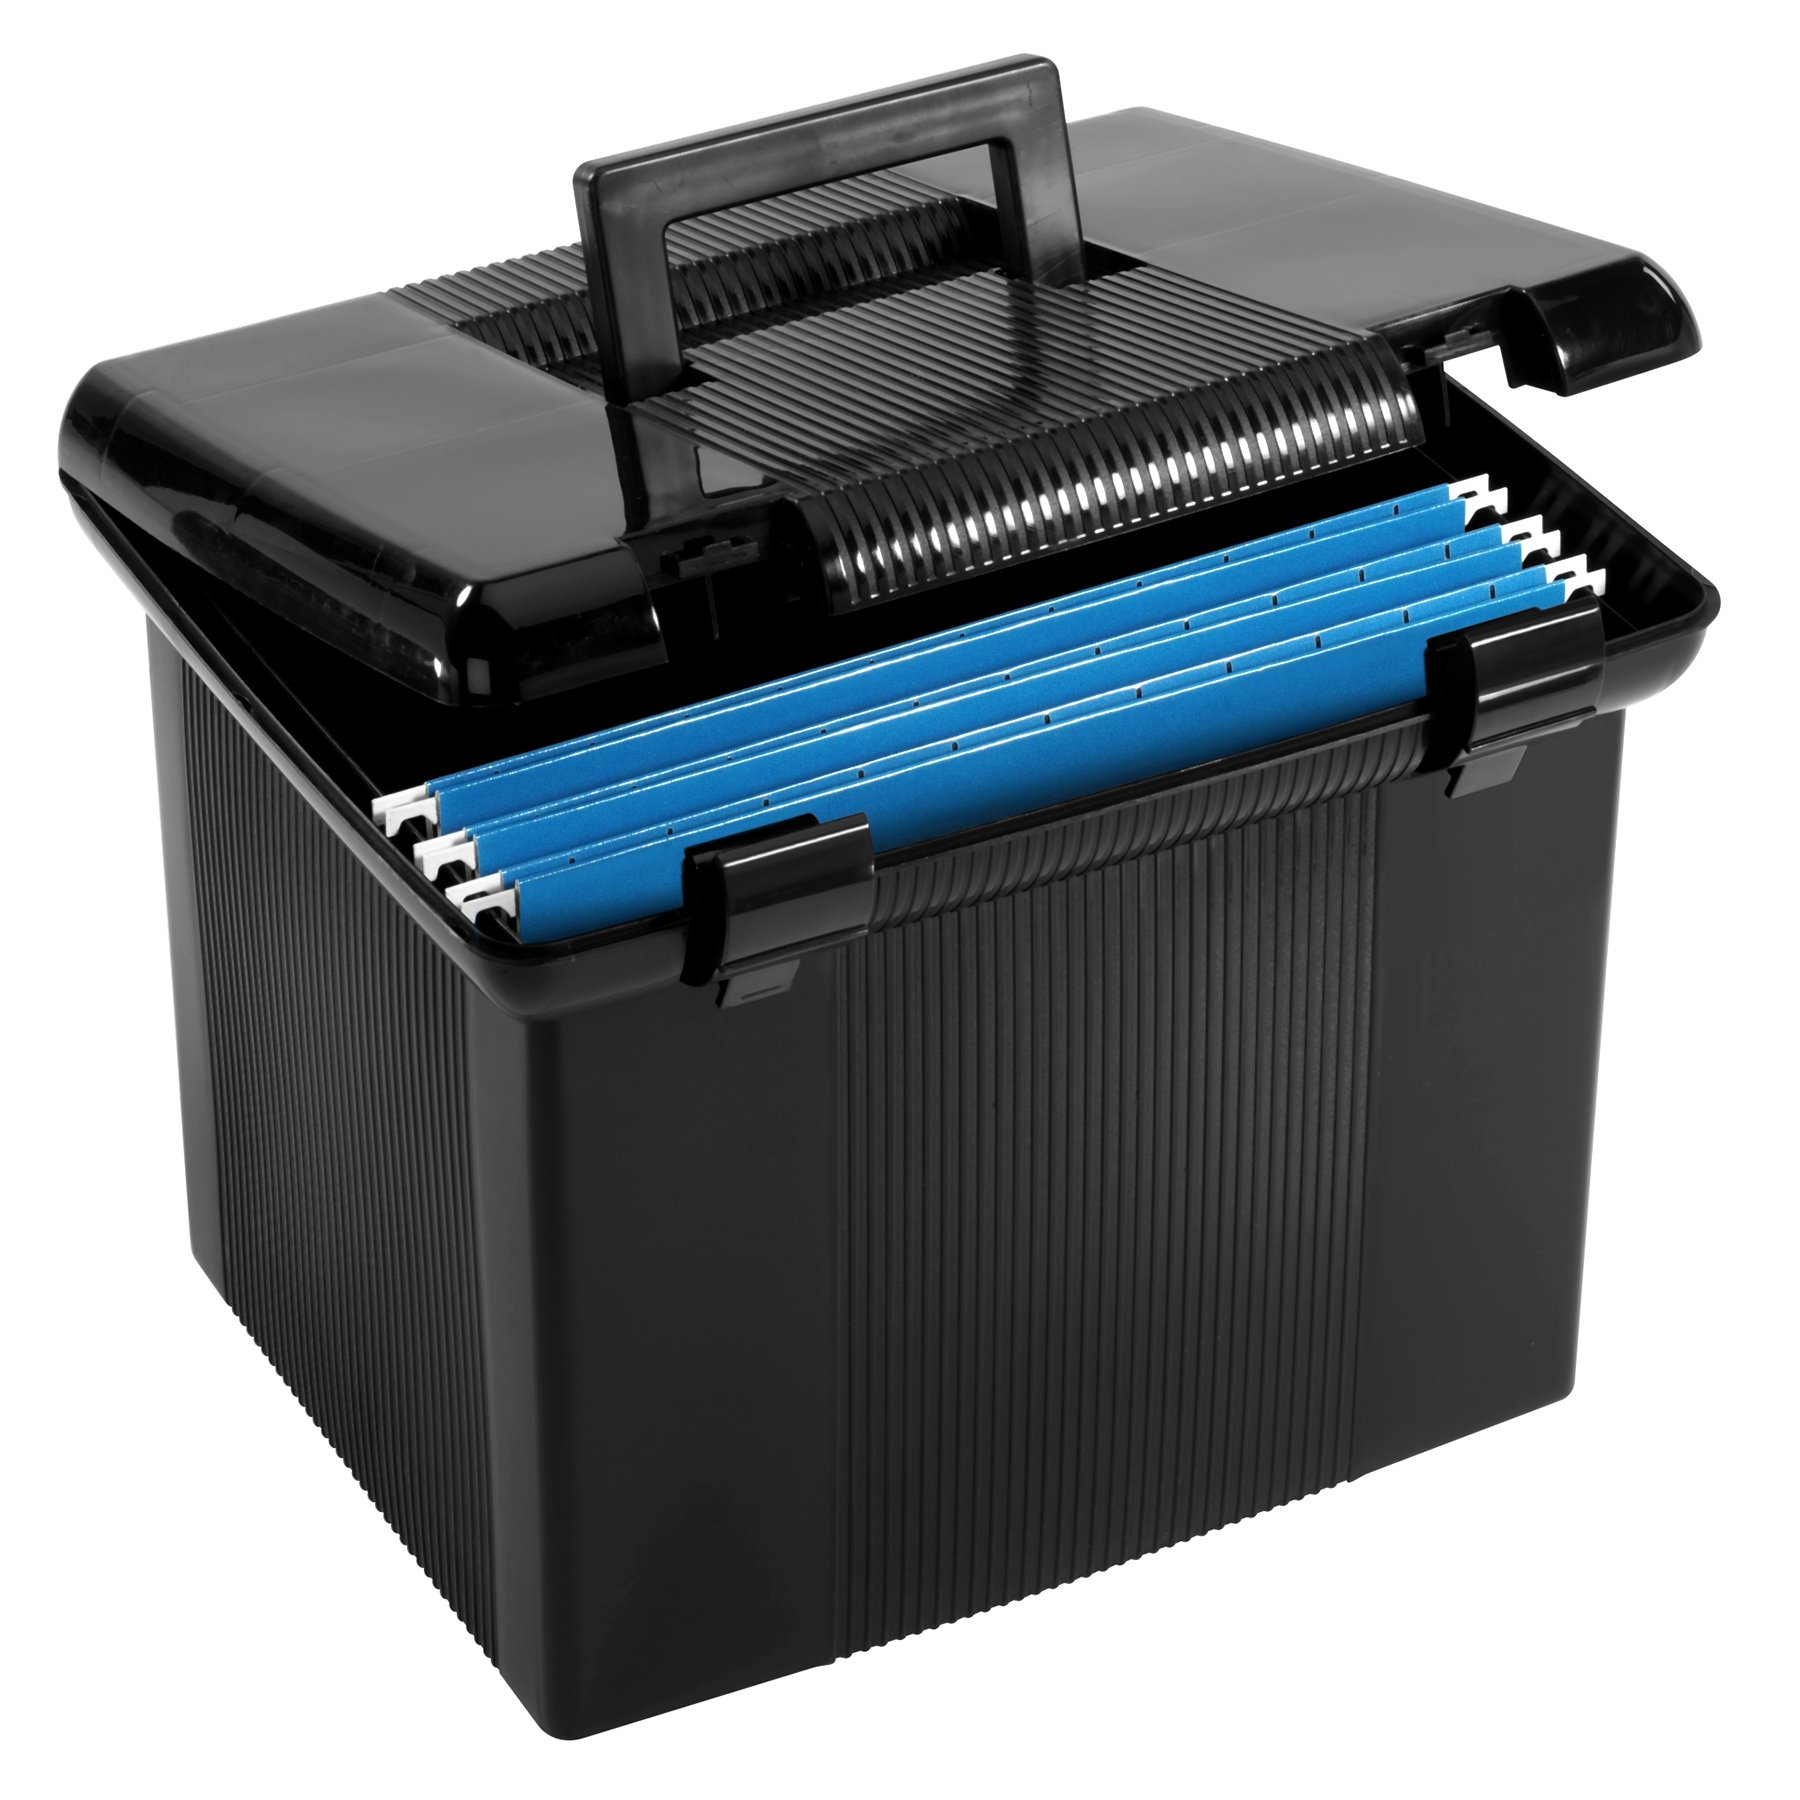 Pendaflex Portable File Box, Black, 11''H x 14'' W x 11-1/8'' D (41742)